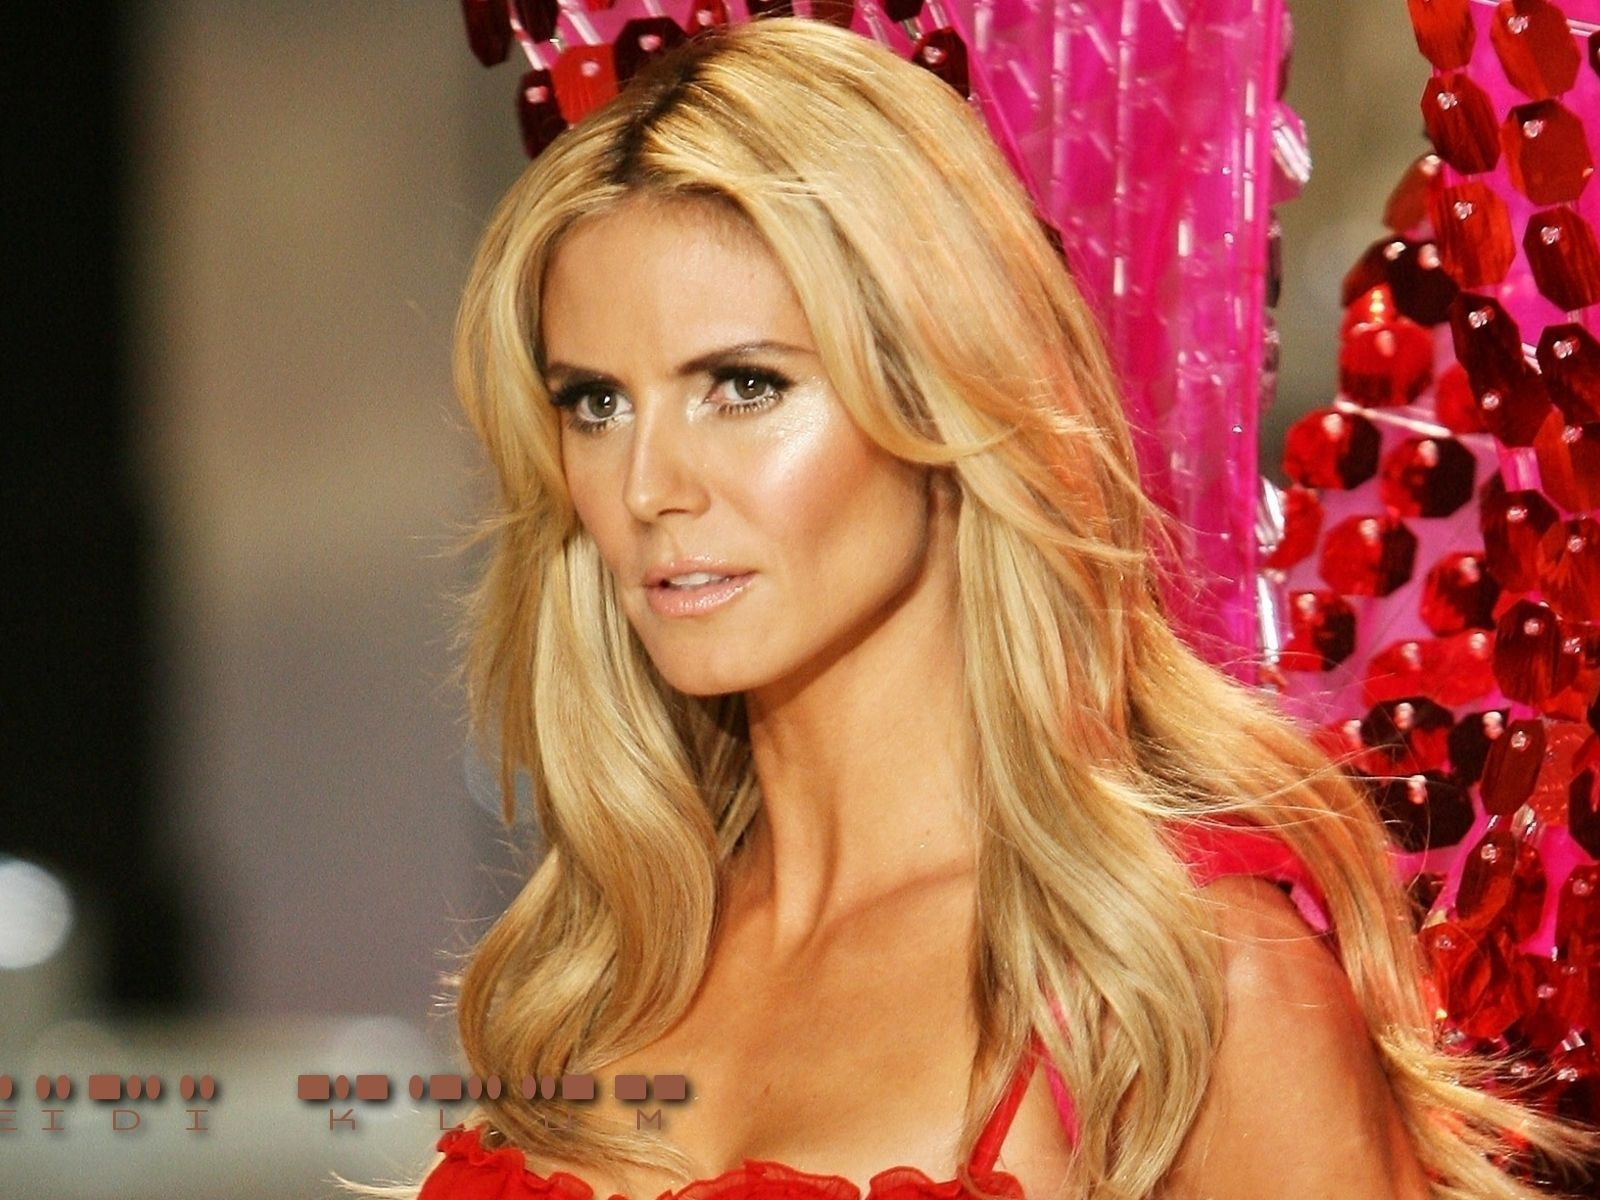 Heidi Klum #052 - 1600x1200 Wallpapers Pictures Photos Images